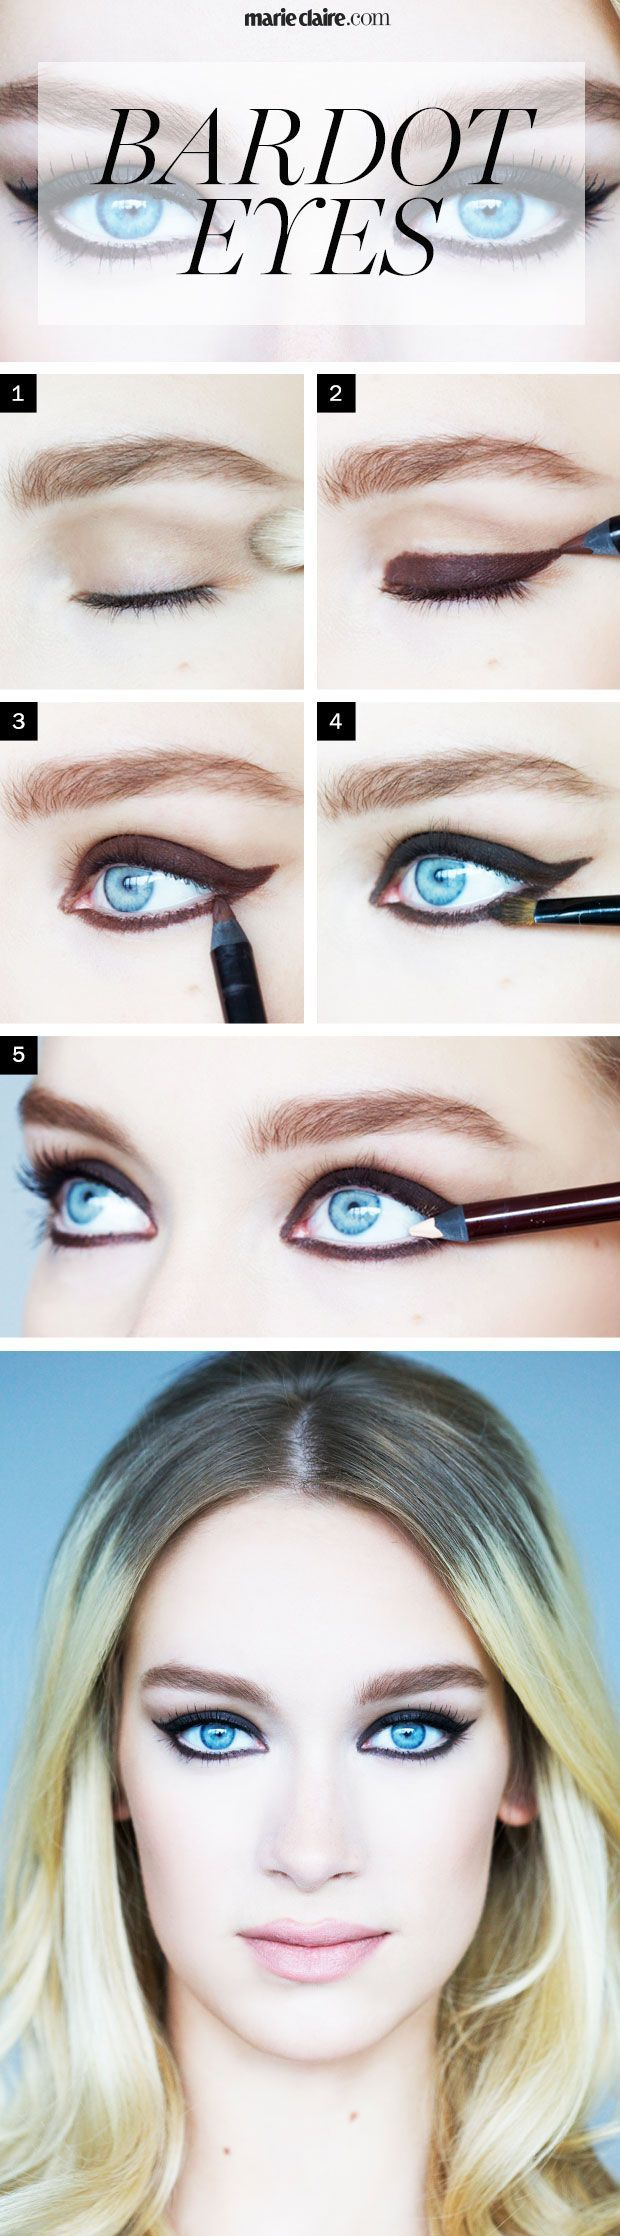 Makeup How-To: Brigitte Bardot Eye Makeup | Dramatic Tutorial for a Pretty & Awesome Winged Tip Eyeliner Look | For More Great Makeup Tips & Advice Visit MakeupTutorials.com.